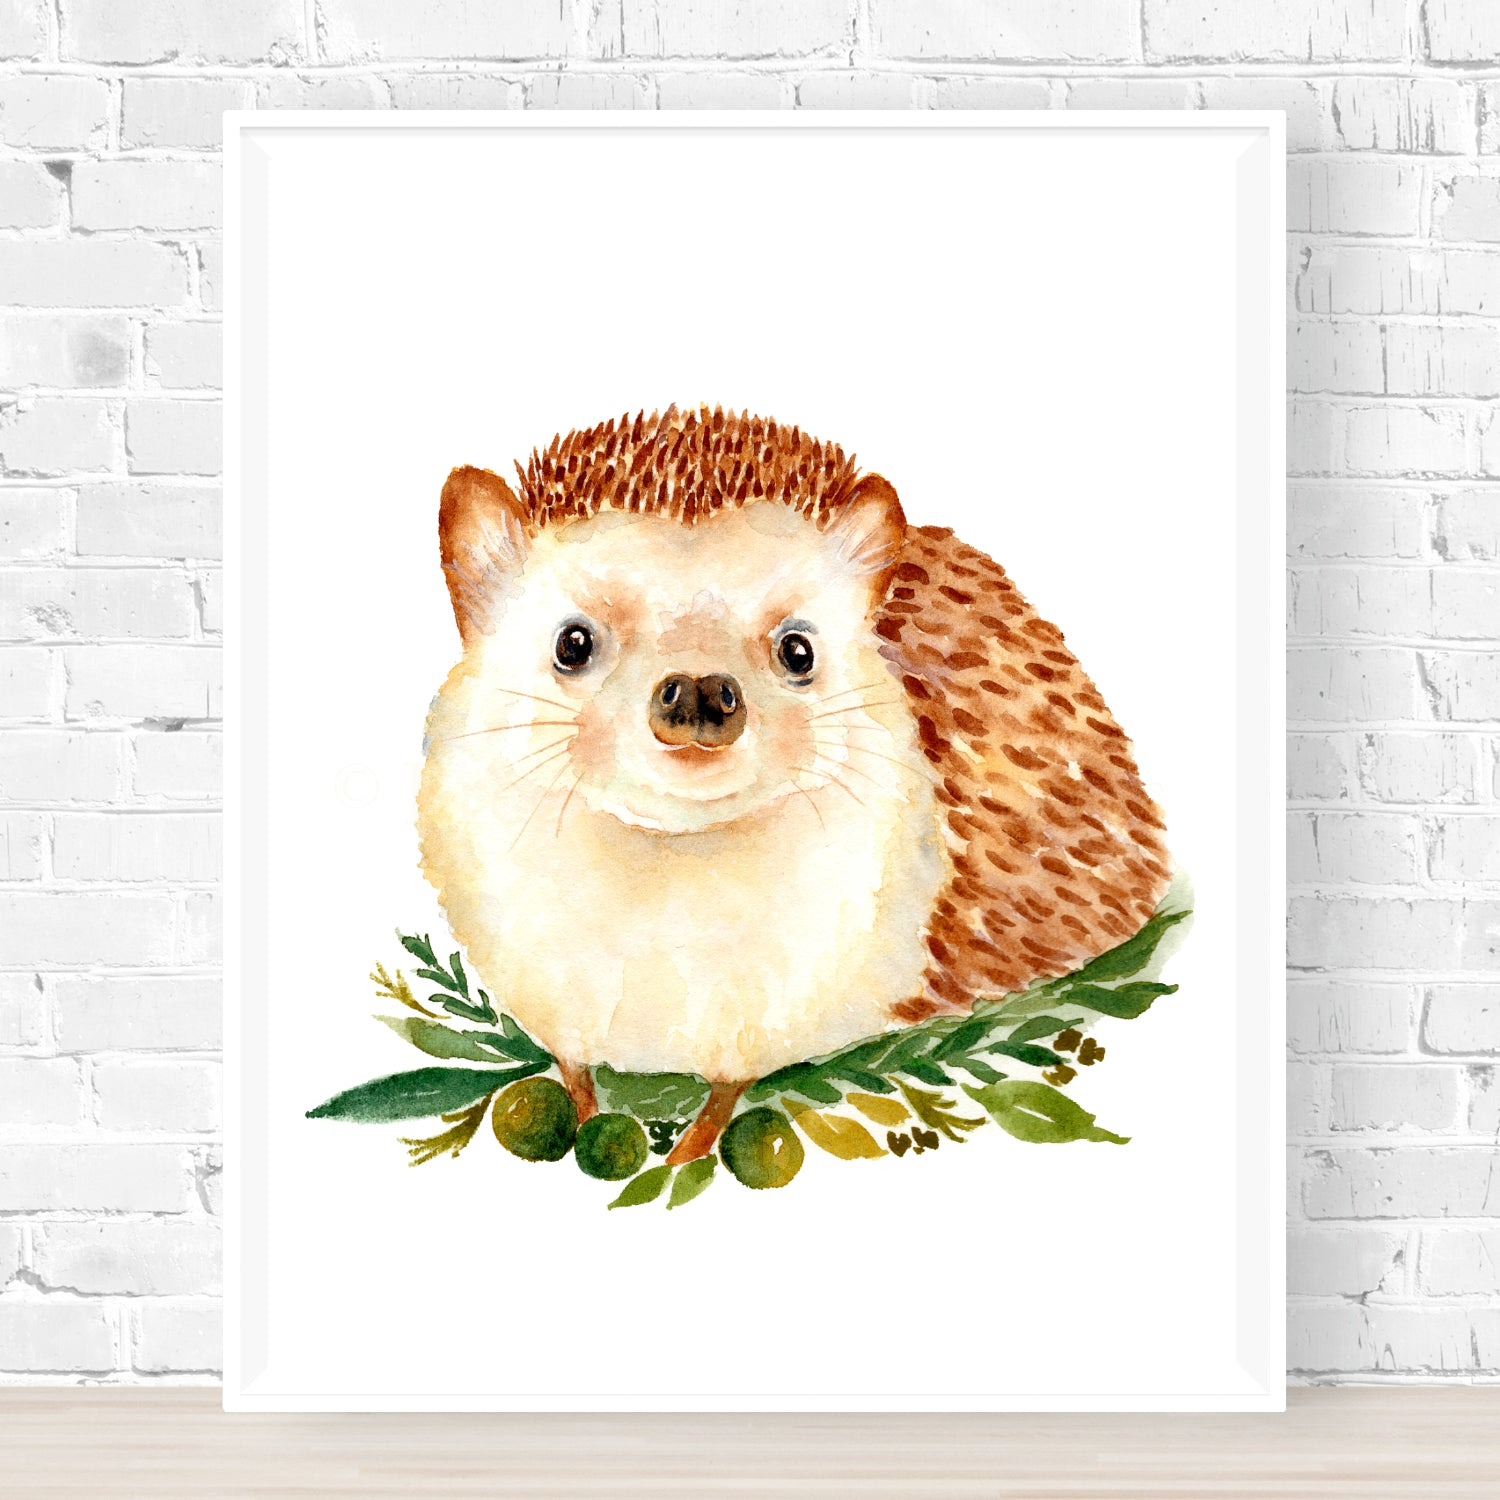 Cactus the Hedgehog